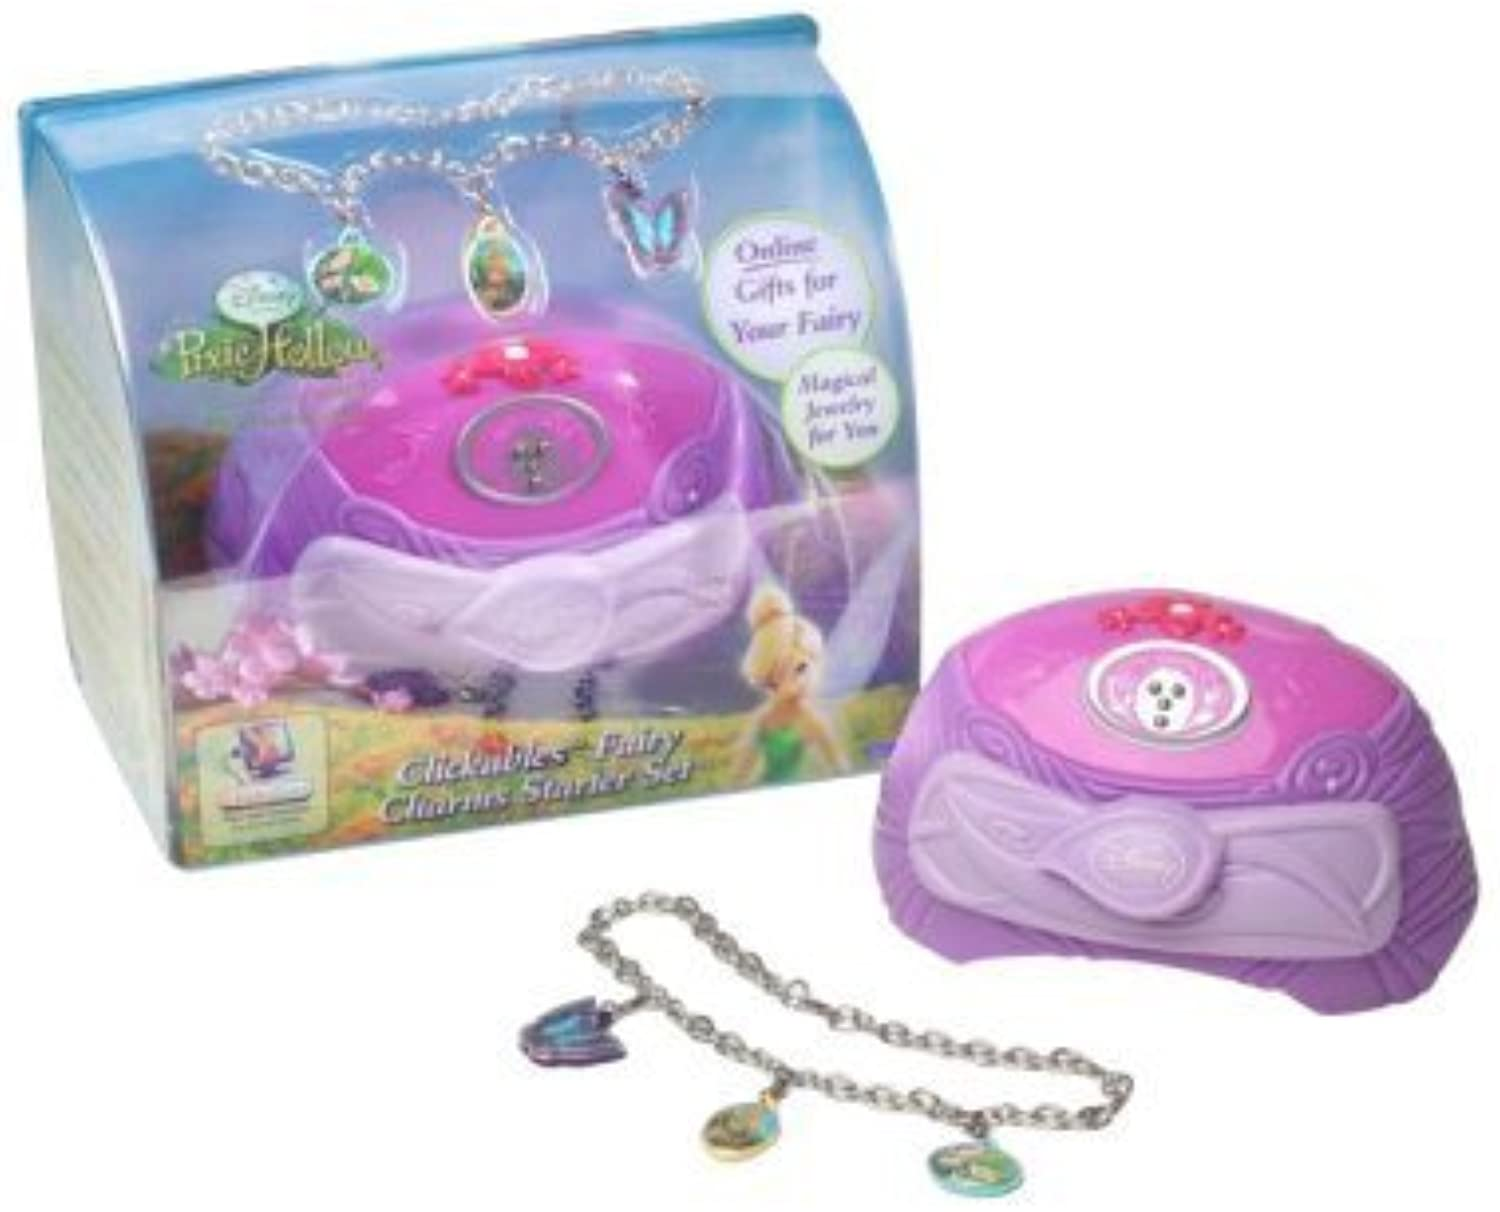 Disney Clickables Fairy Charms Starter Set by Techno Source